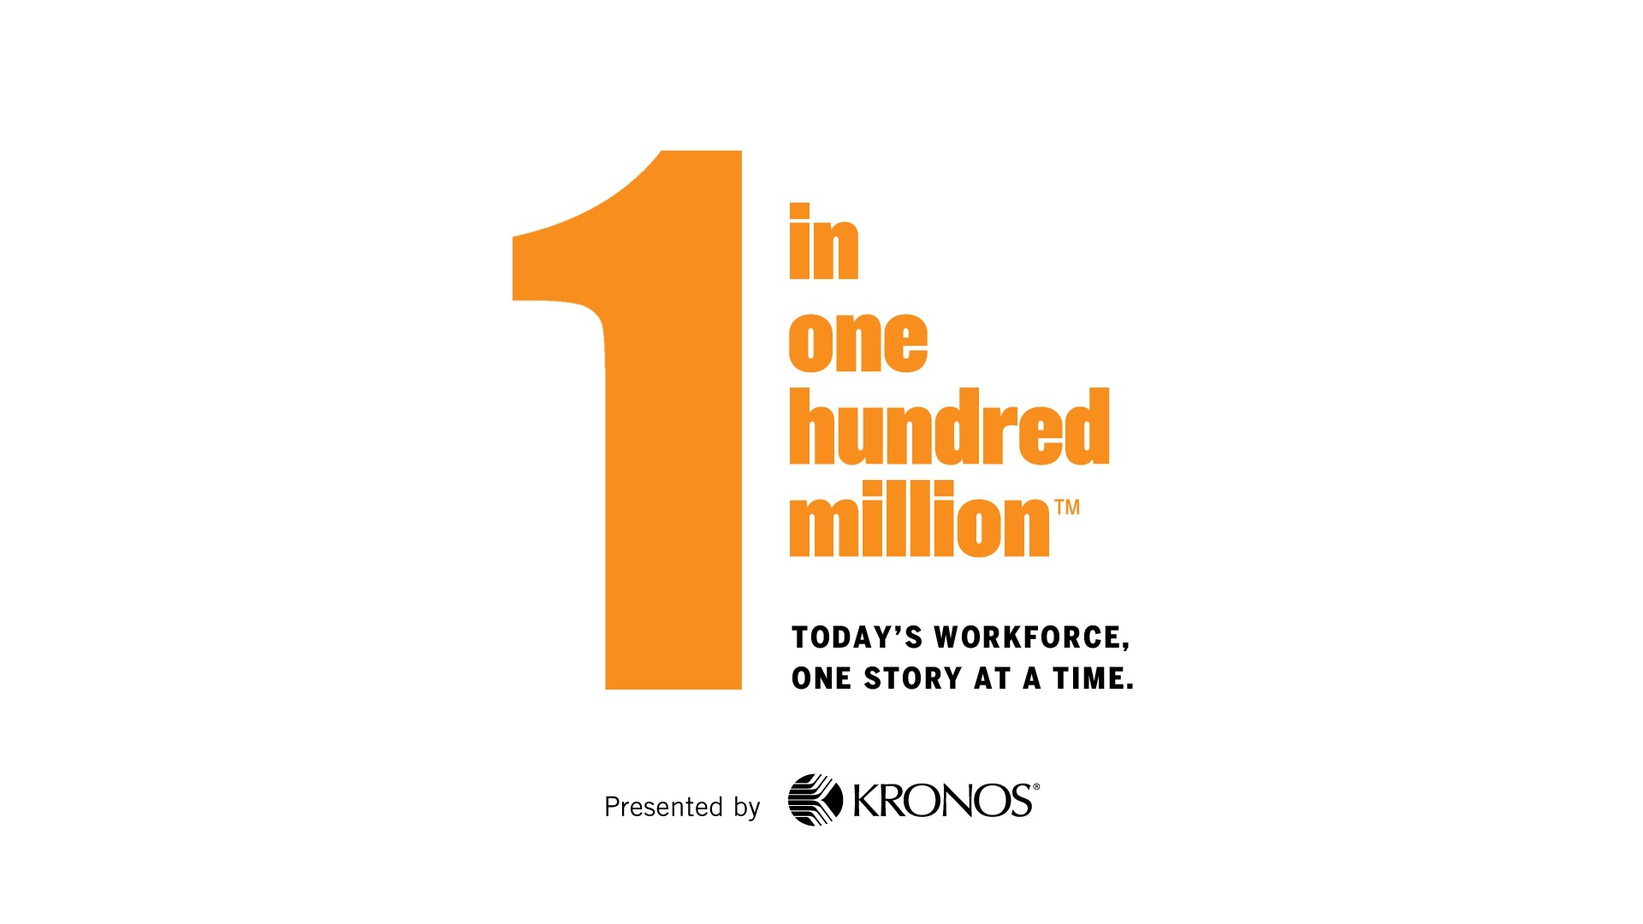 1 in one hundred million Today's Workforce